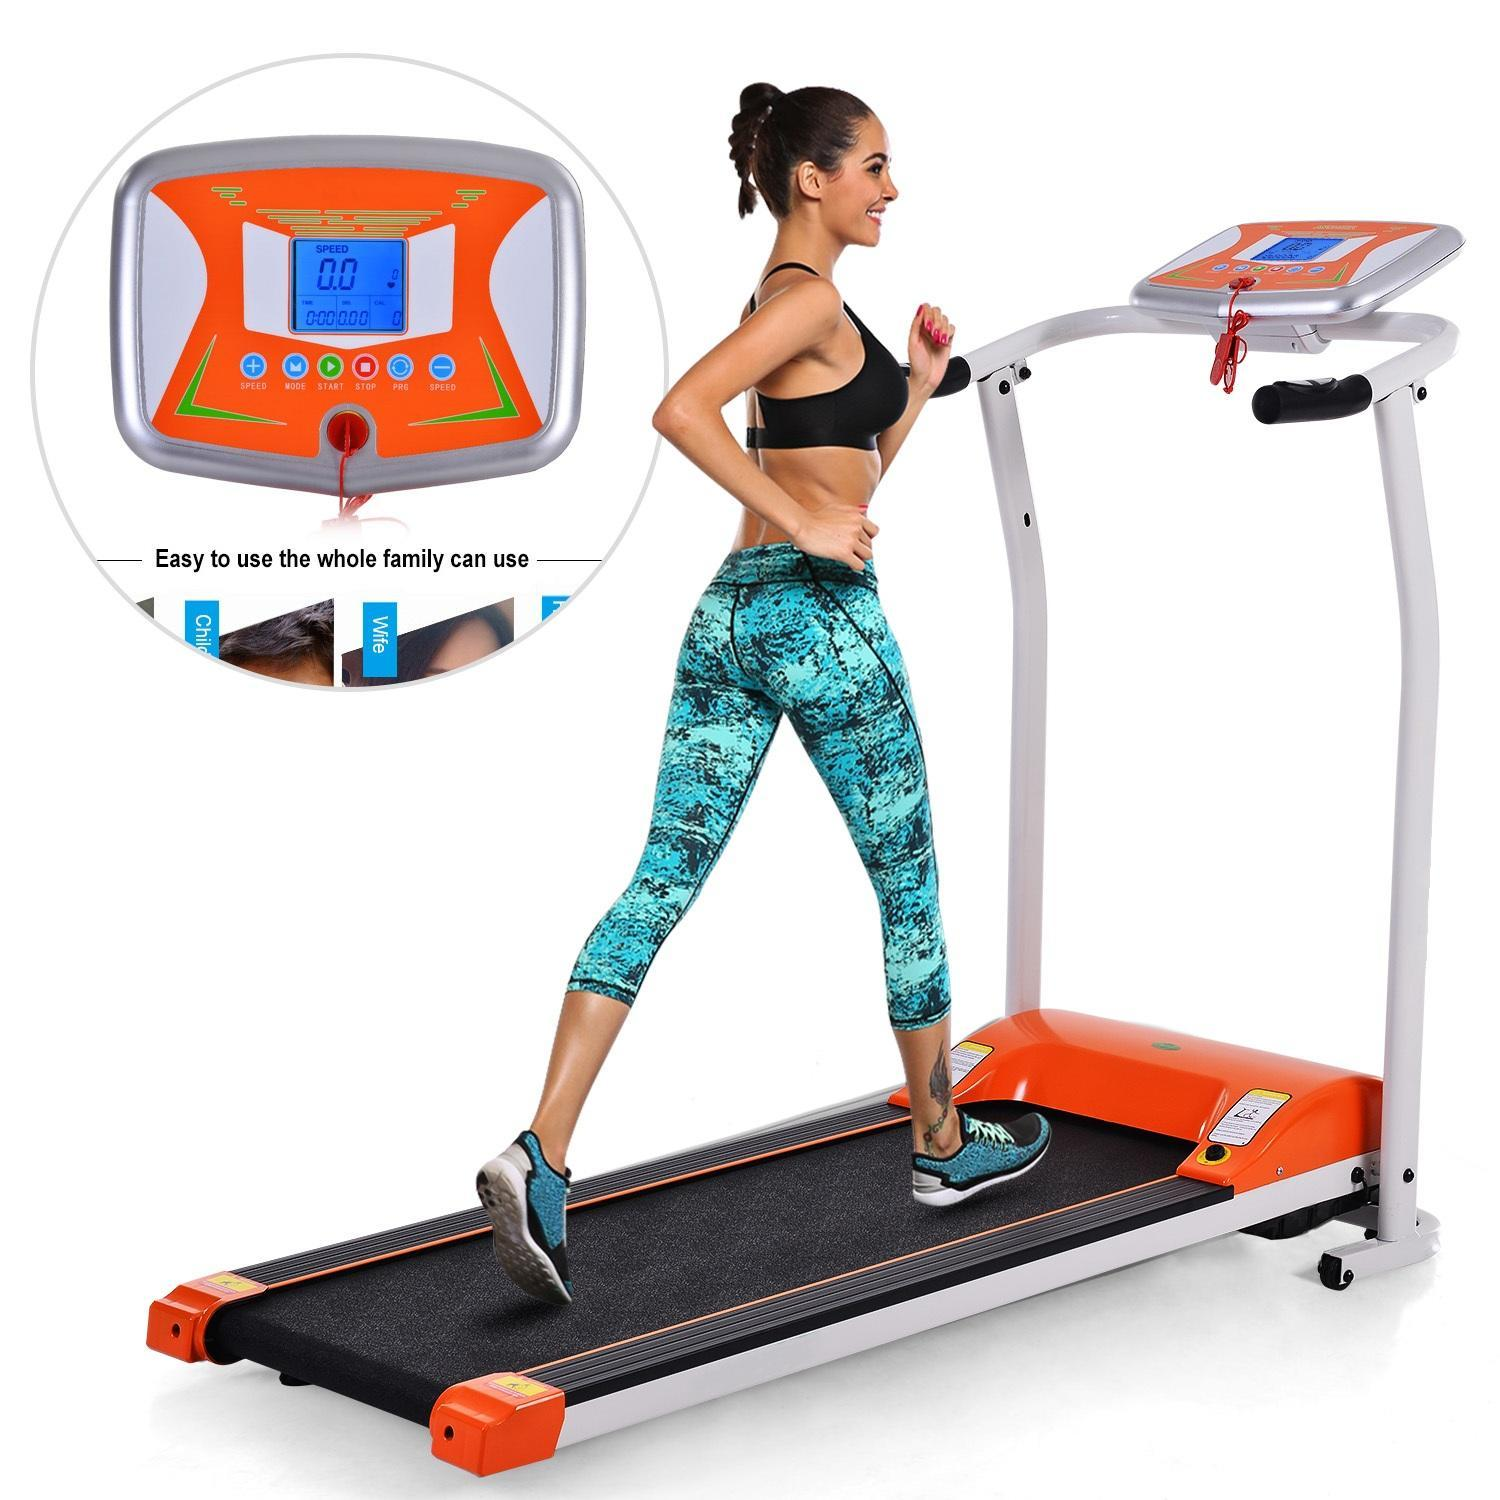 """Ancheer 3.0HP 7"""" WiFi Led Screen Folding Electric Motorized Treadmill Running Machine Training Fitness Equipments with Easy Assembly on Sale"""